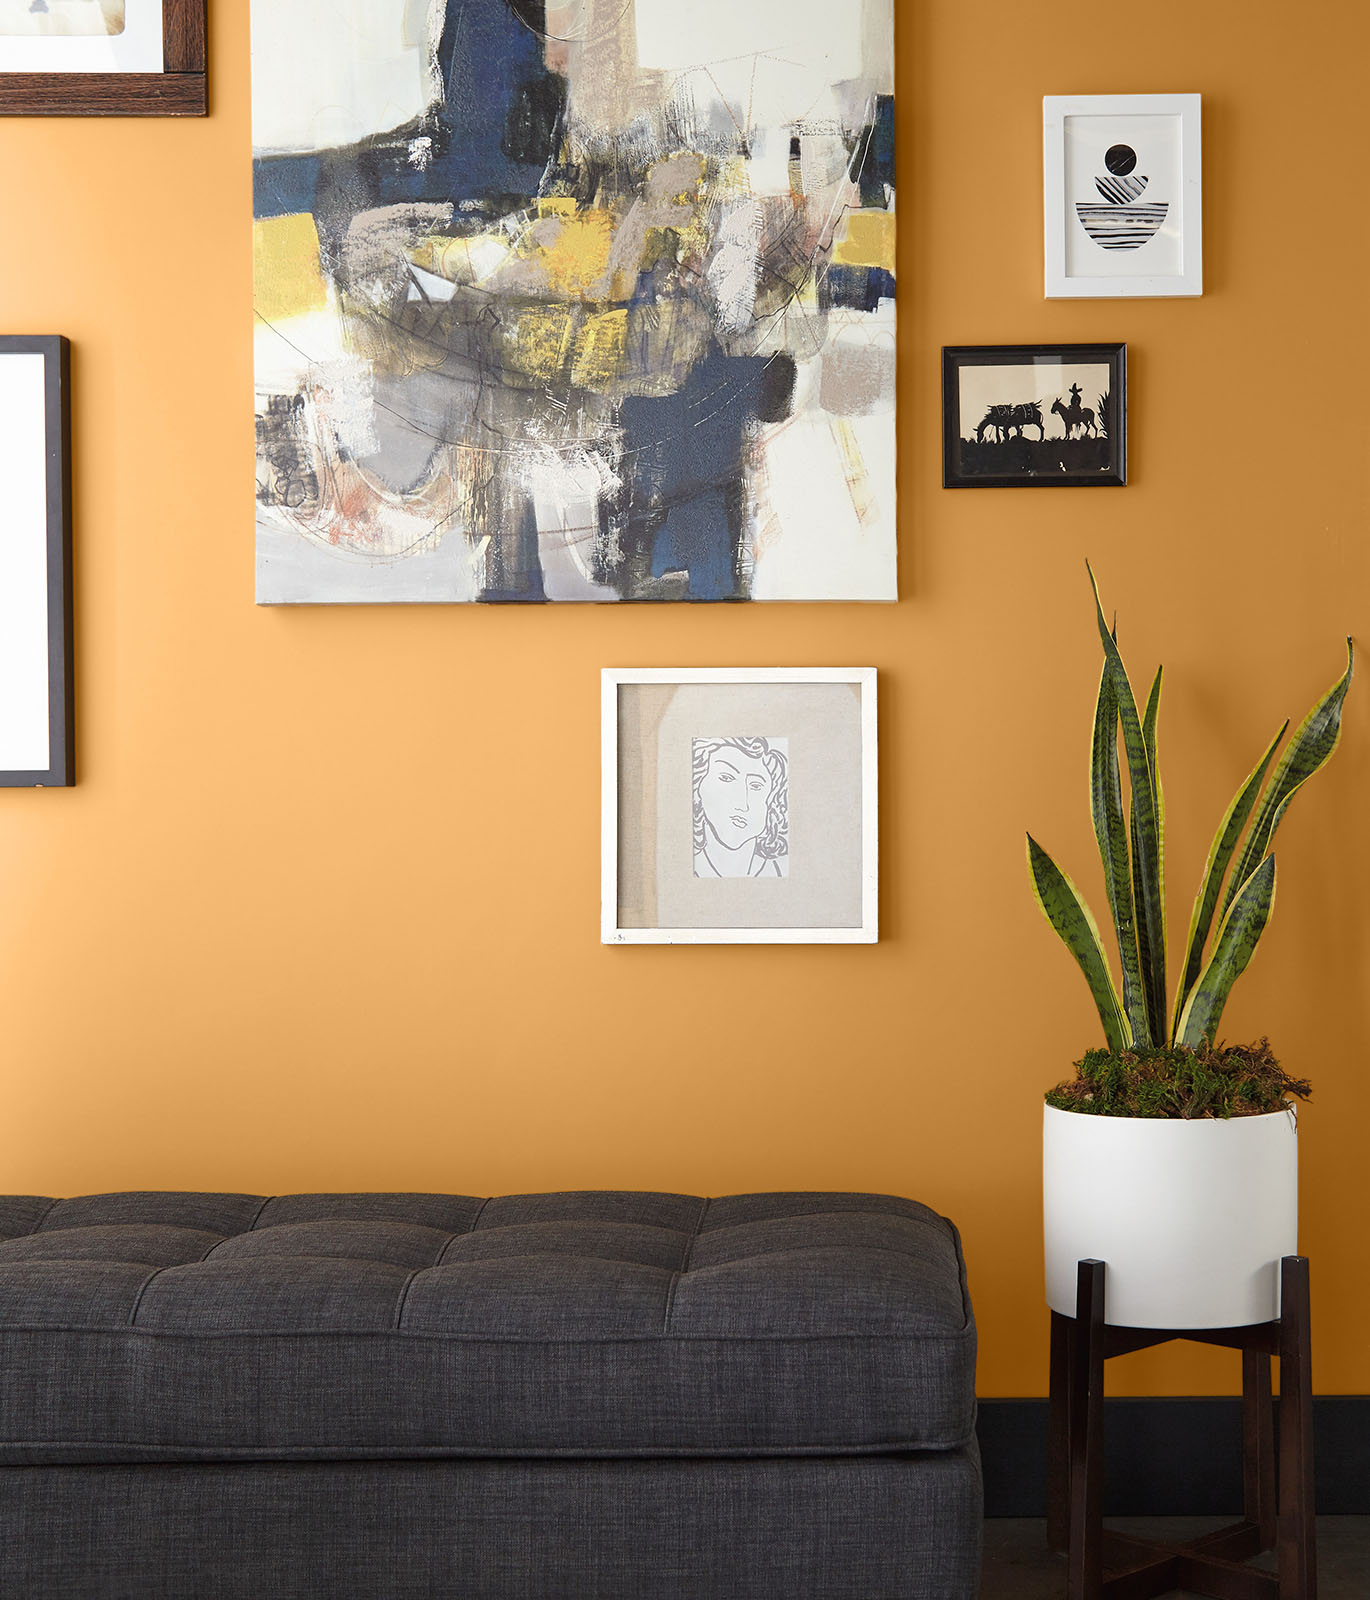 A living room painted in golden-yellow with a gray couch. The wall is filled with hanging art work. The room feels optimistic and bright.